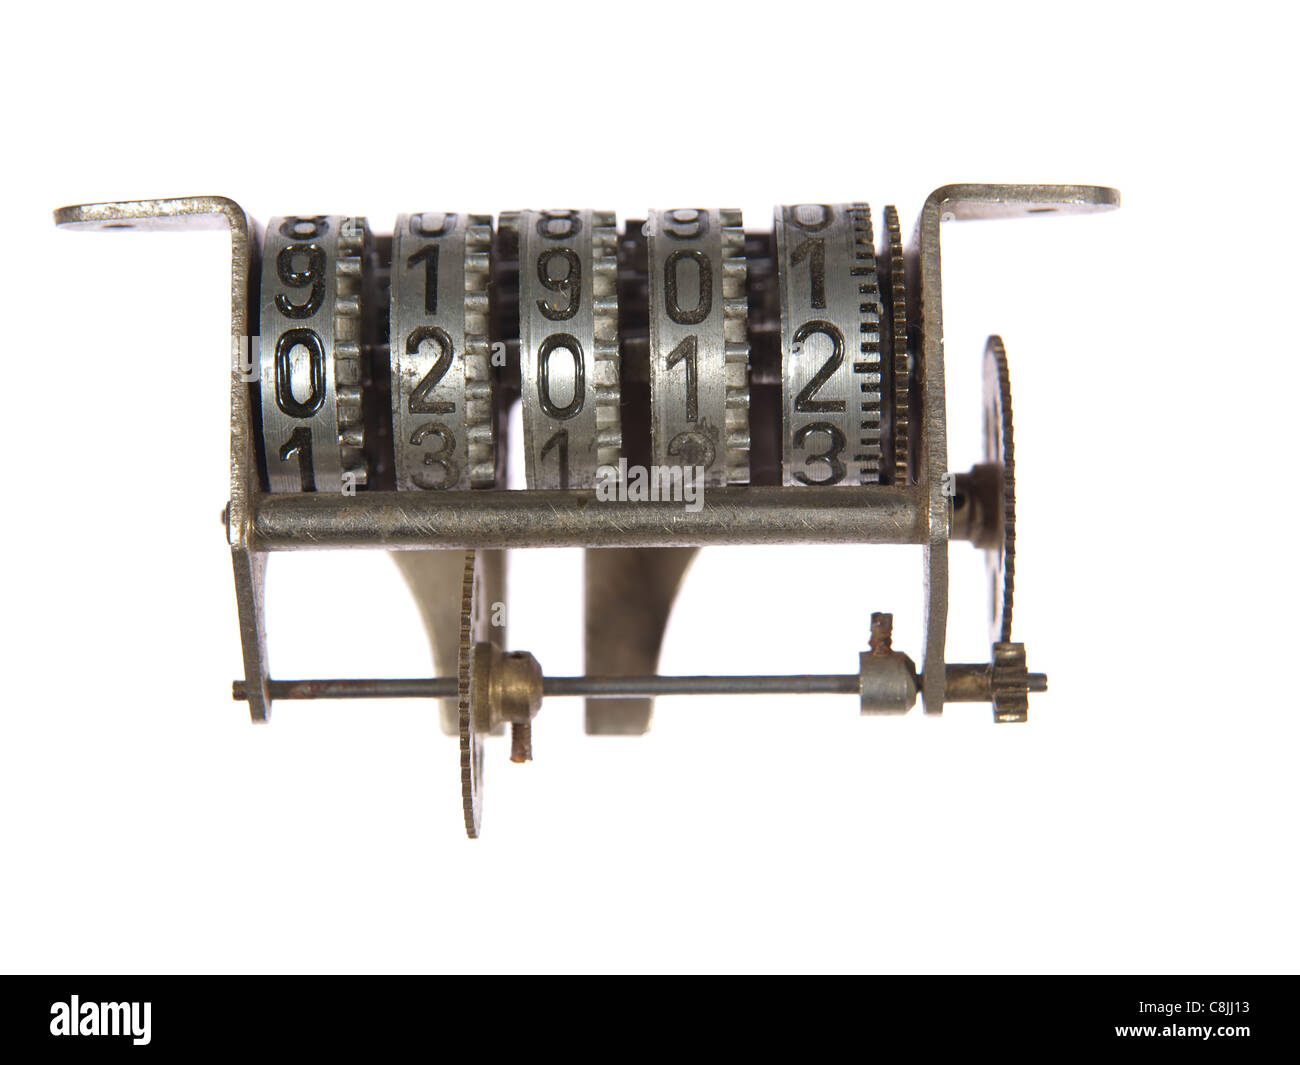 Mechanical counter mechanism with gears, the new year 2012. - Stock Image